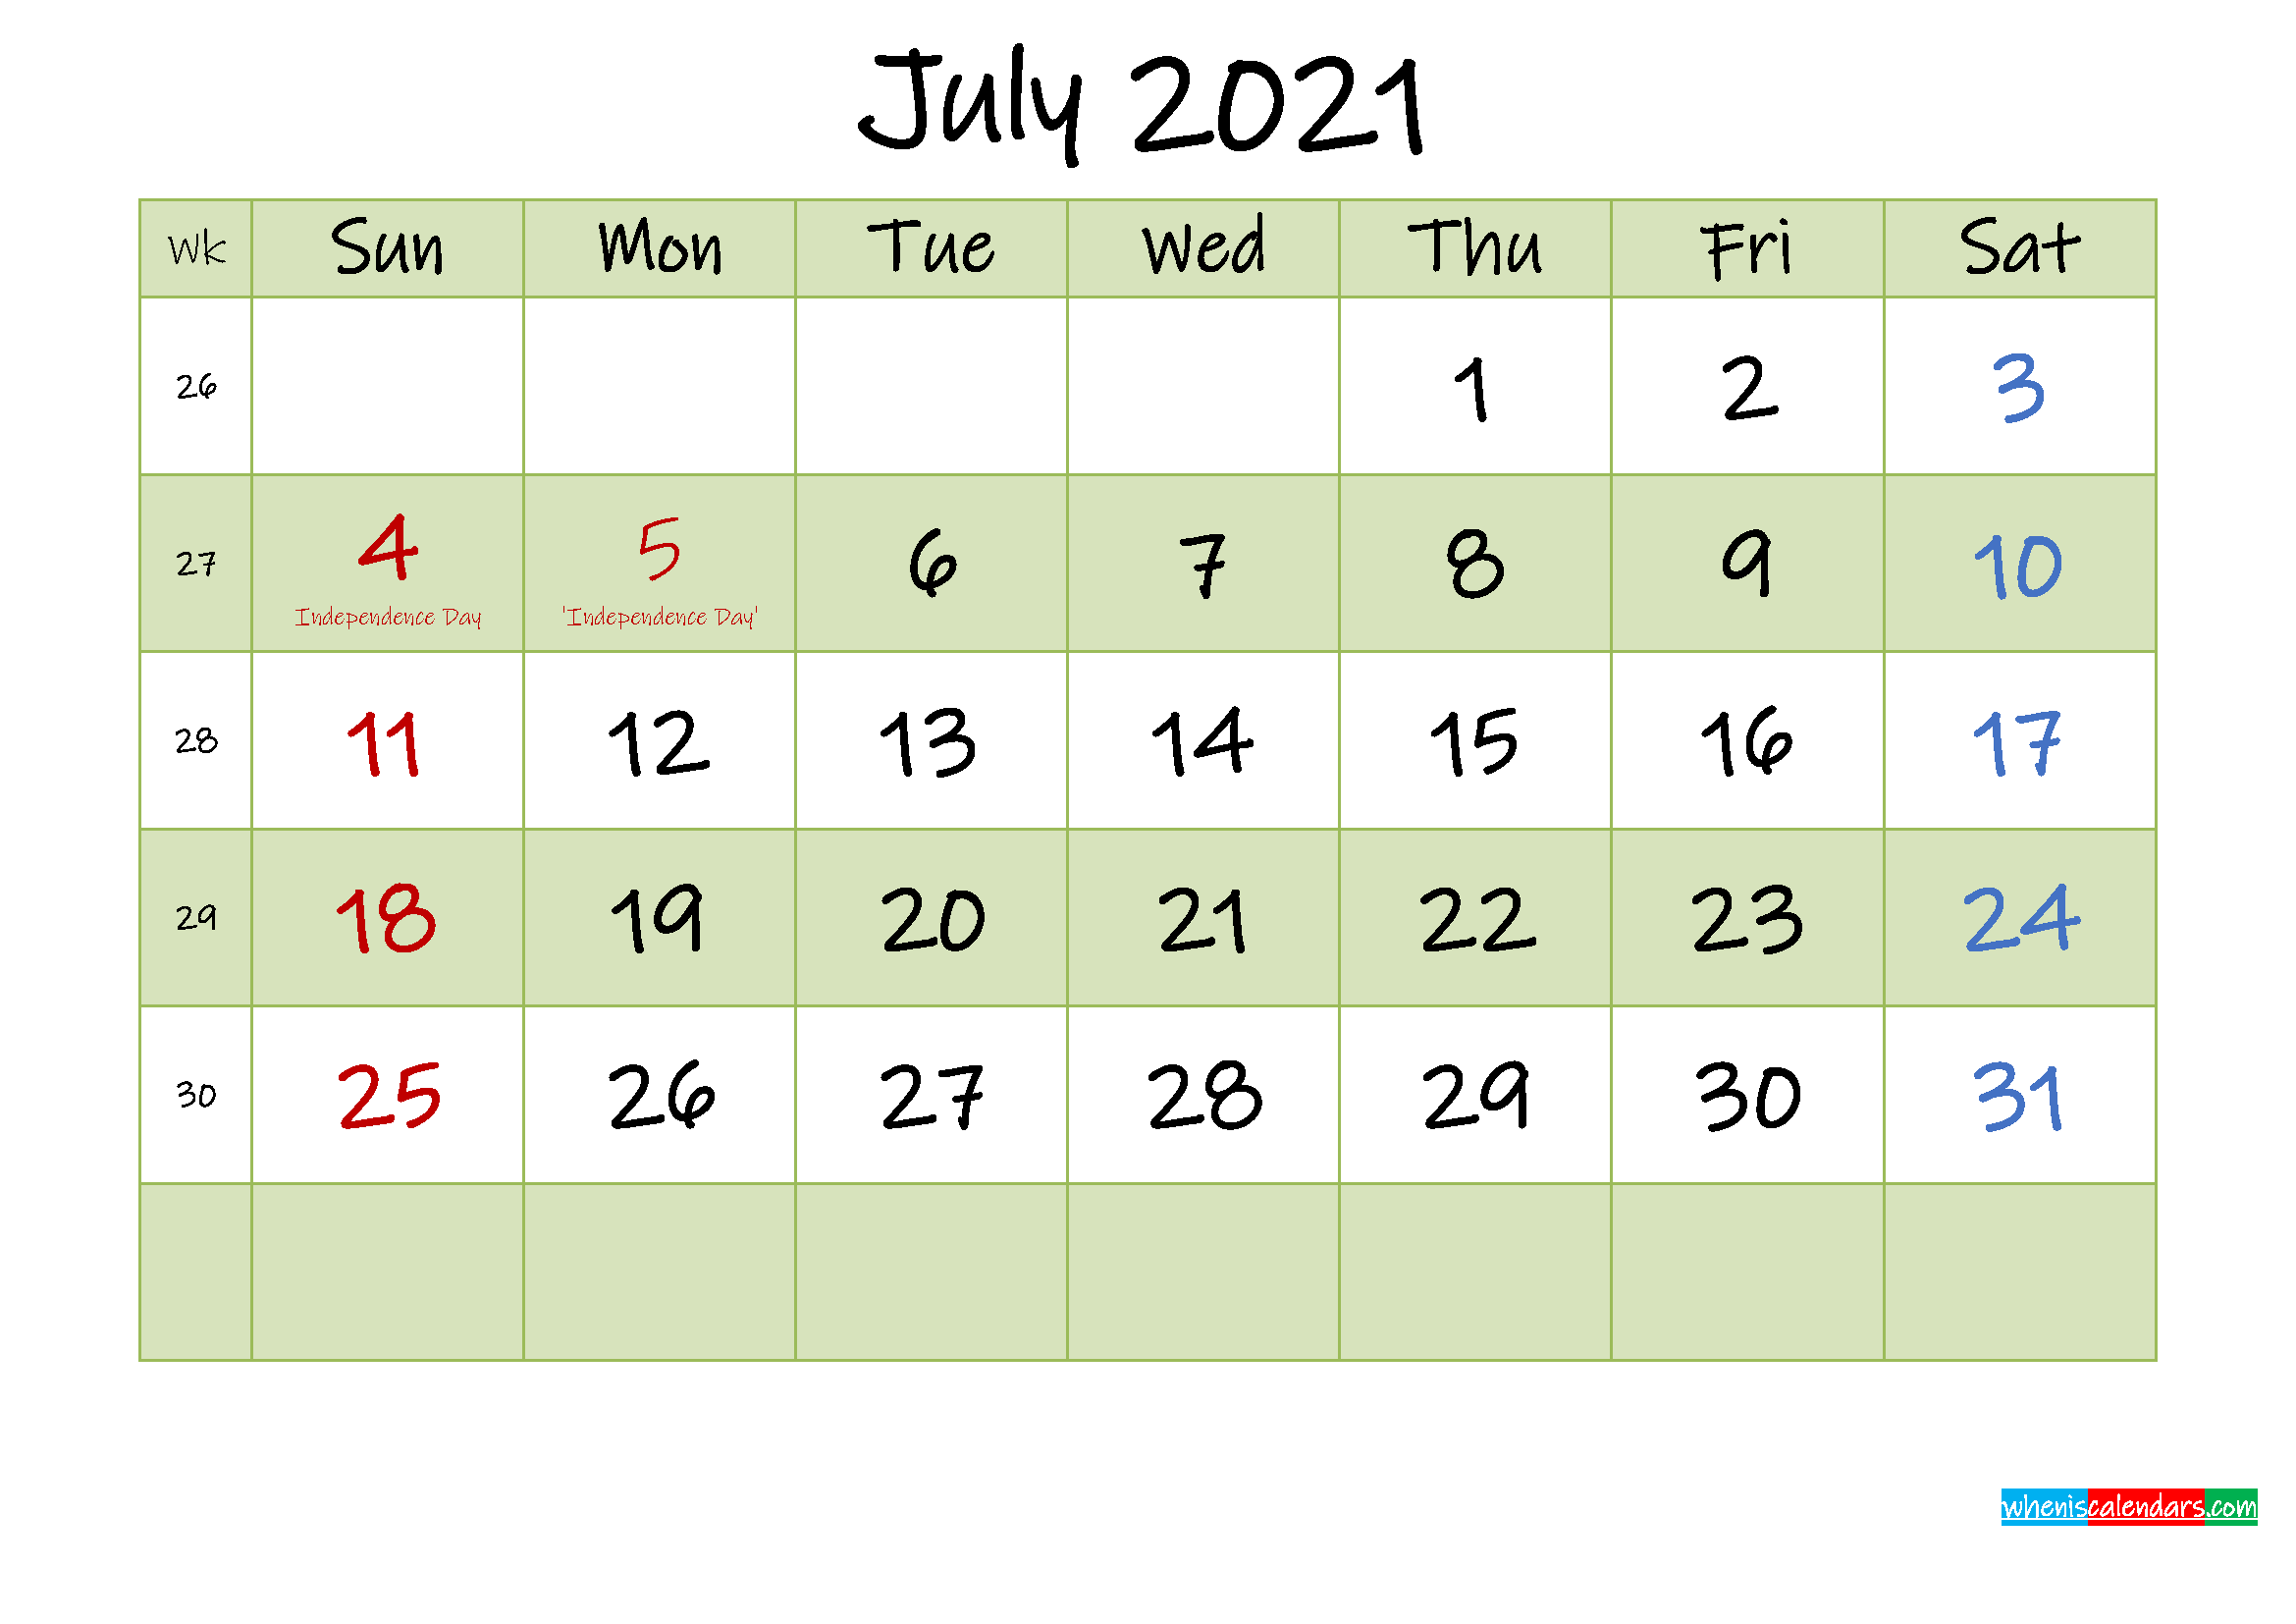 July 2021 Calendar with Holidays Printable